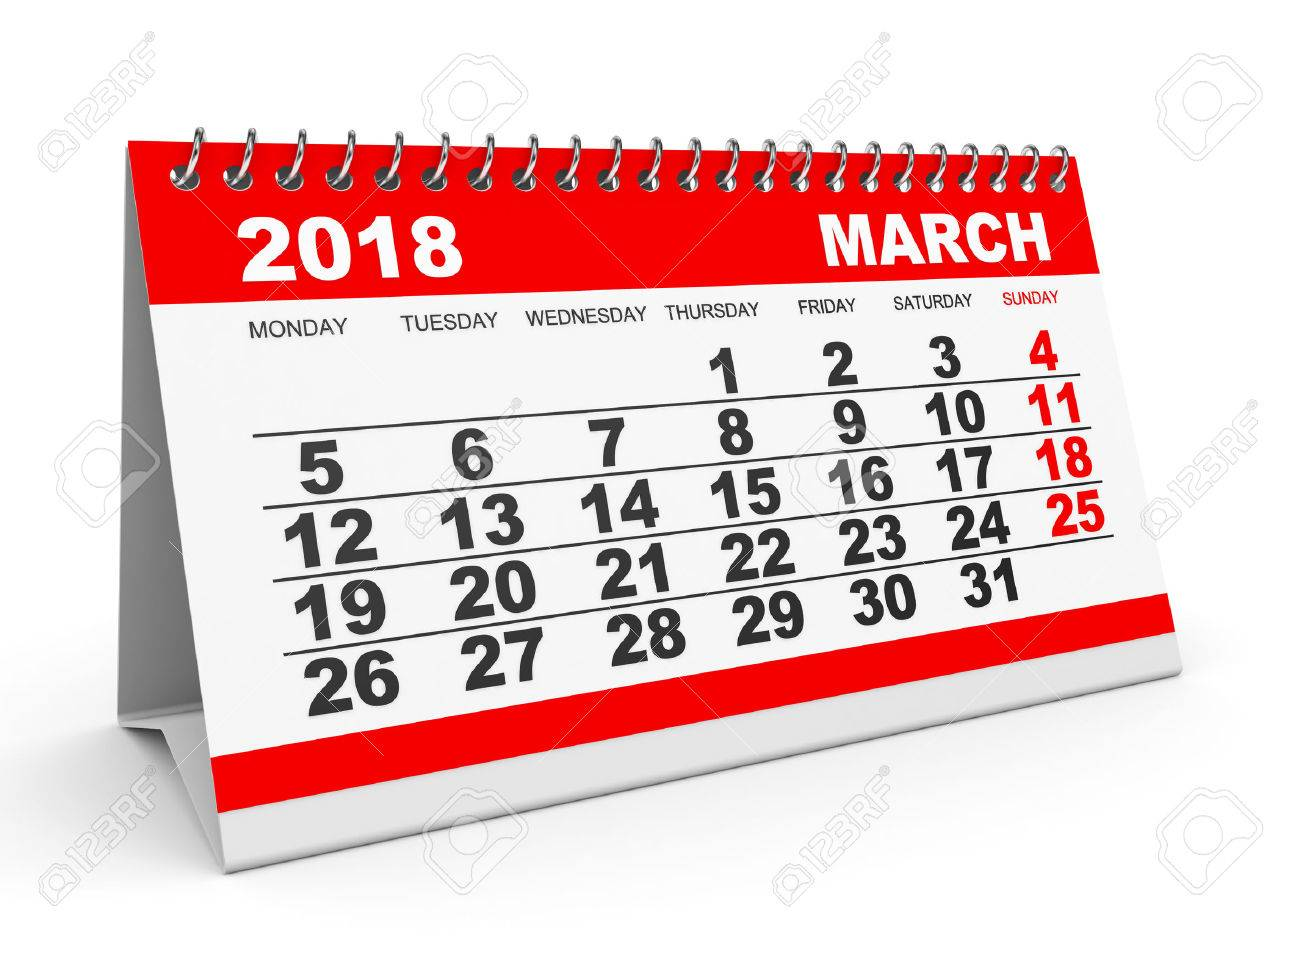 . Clipart calendar march 2018